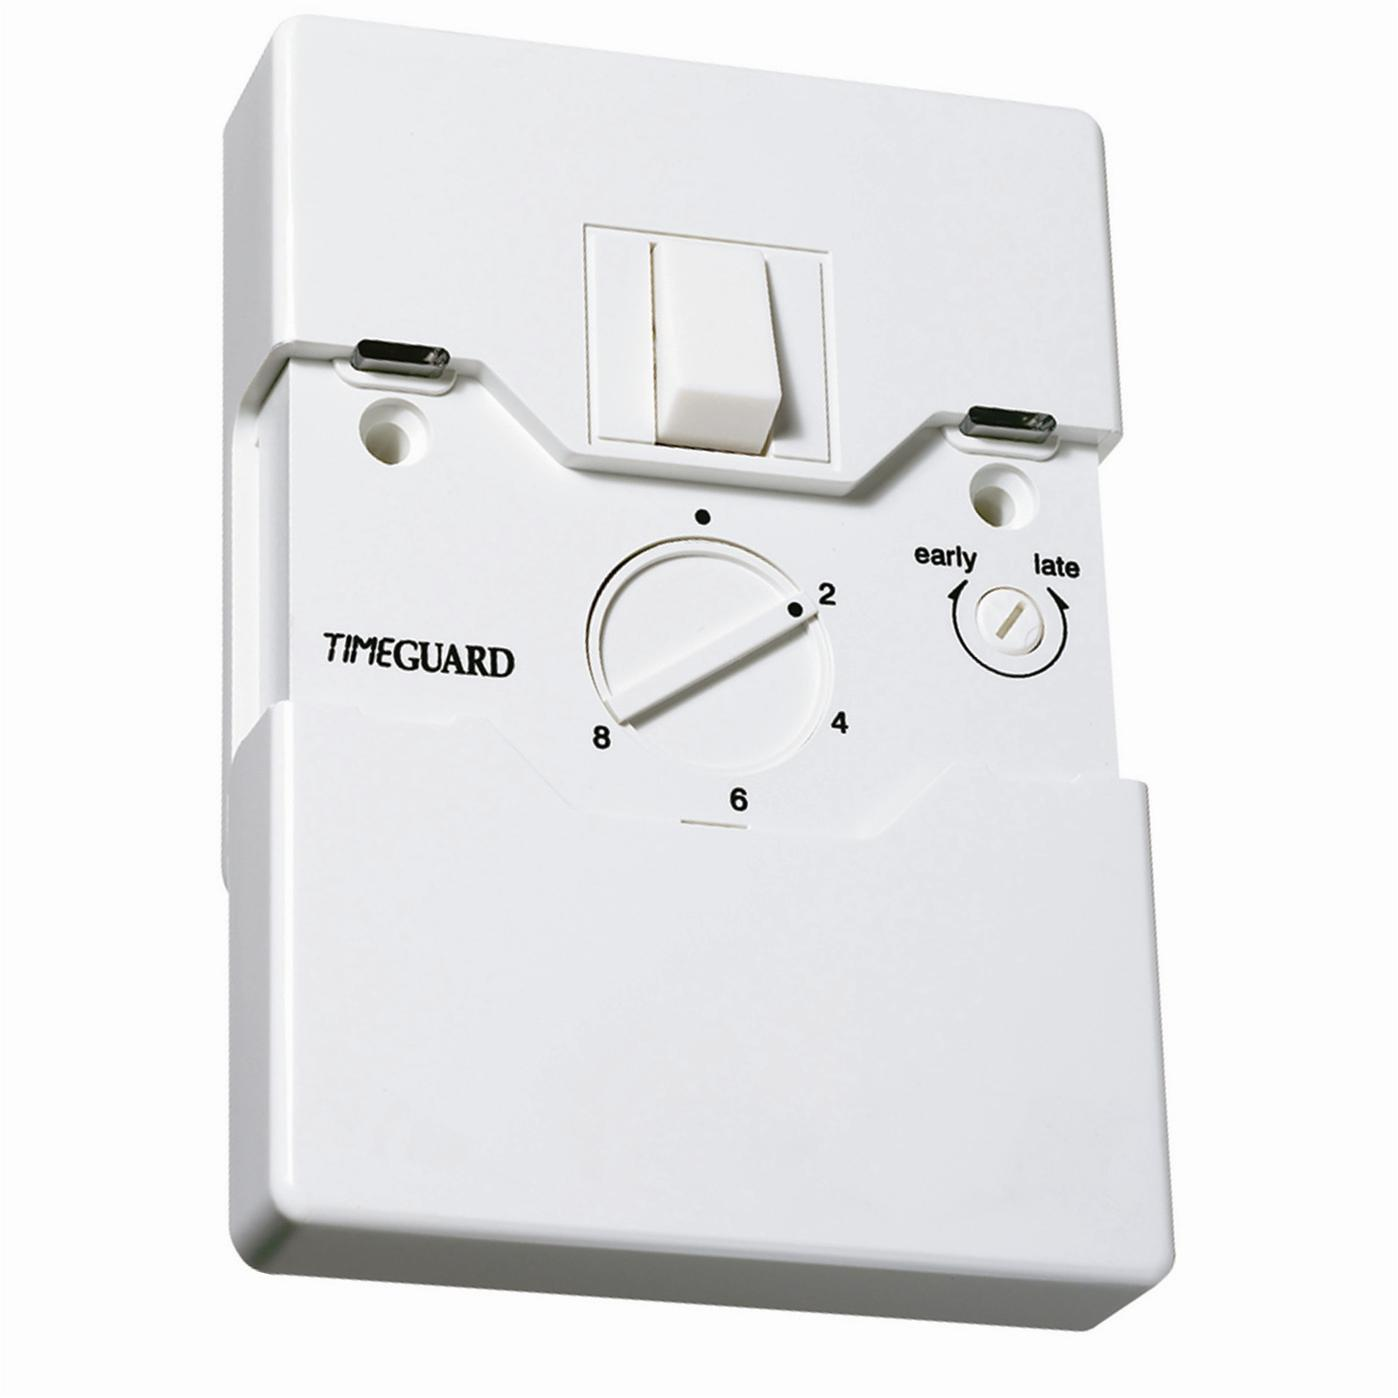 Programmable Security Light Switch 1 Gang White | Wireless Radio ...